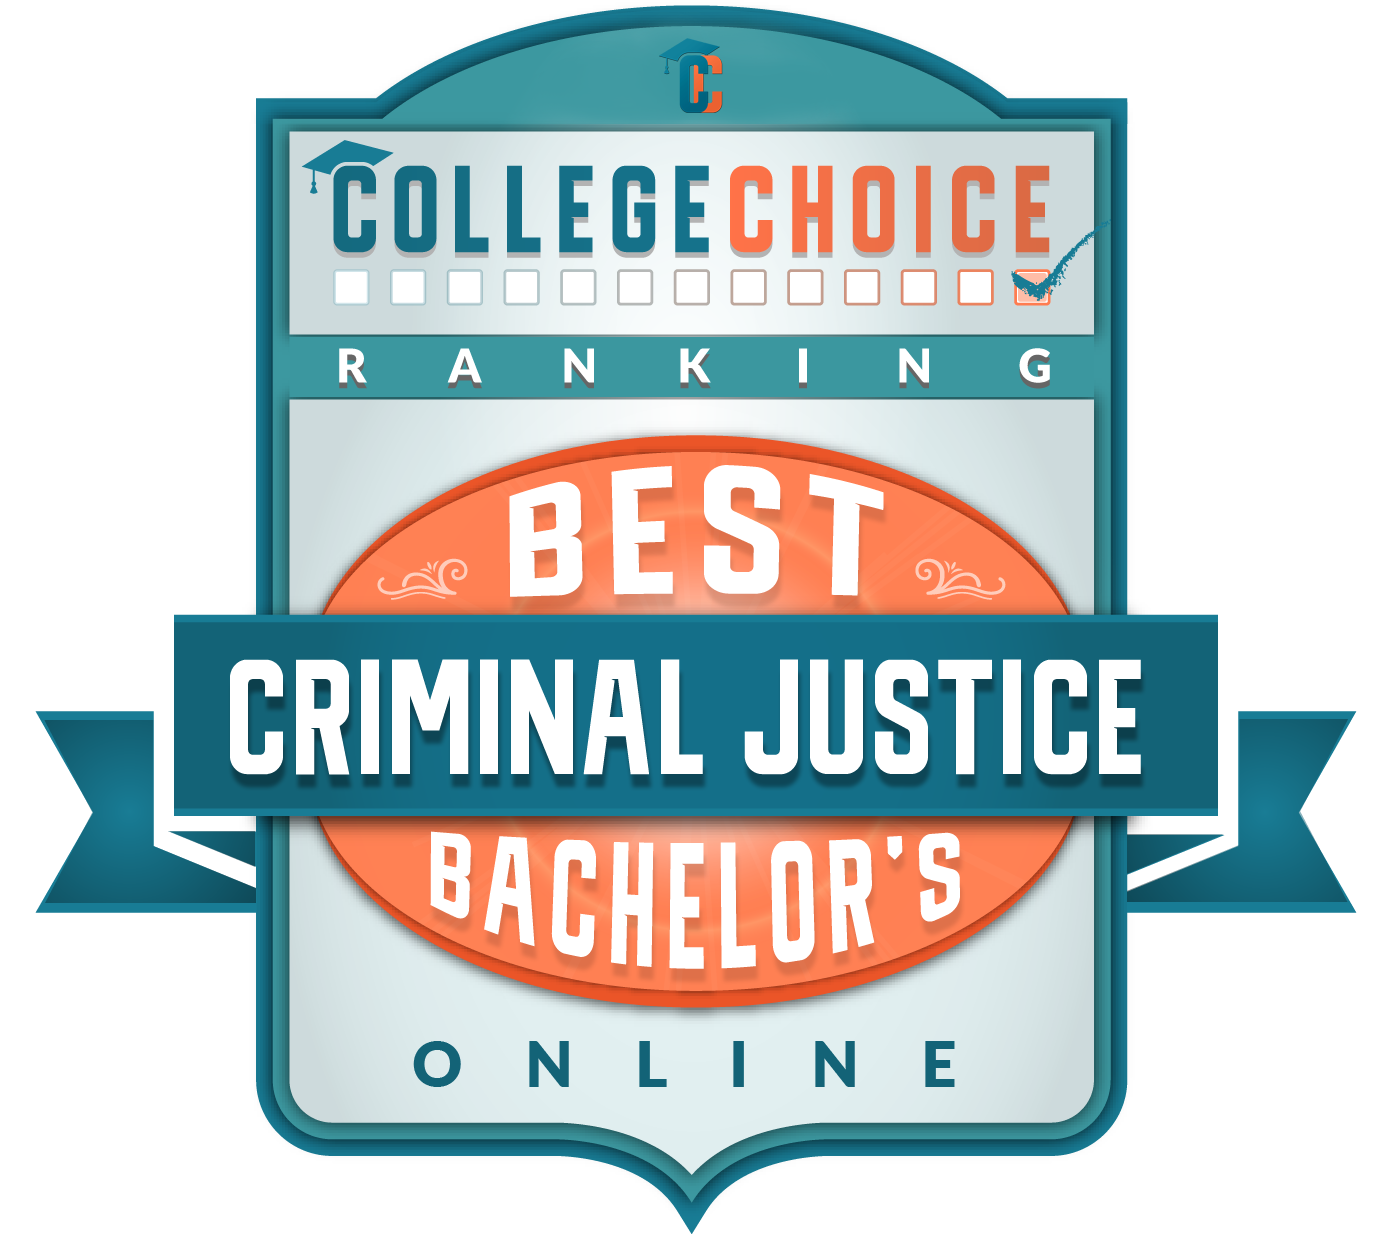 College Choice ranking badge